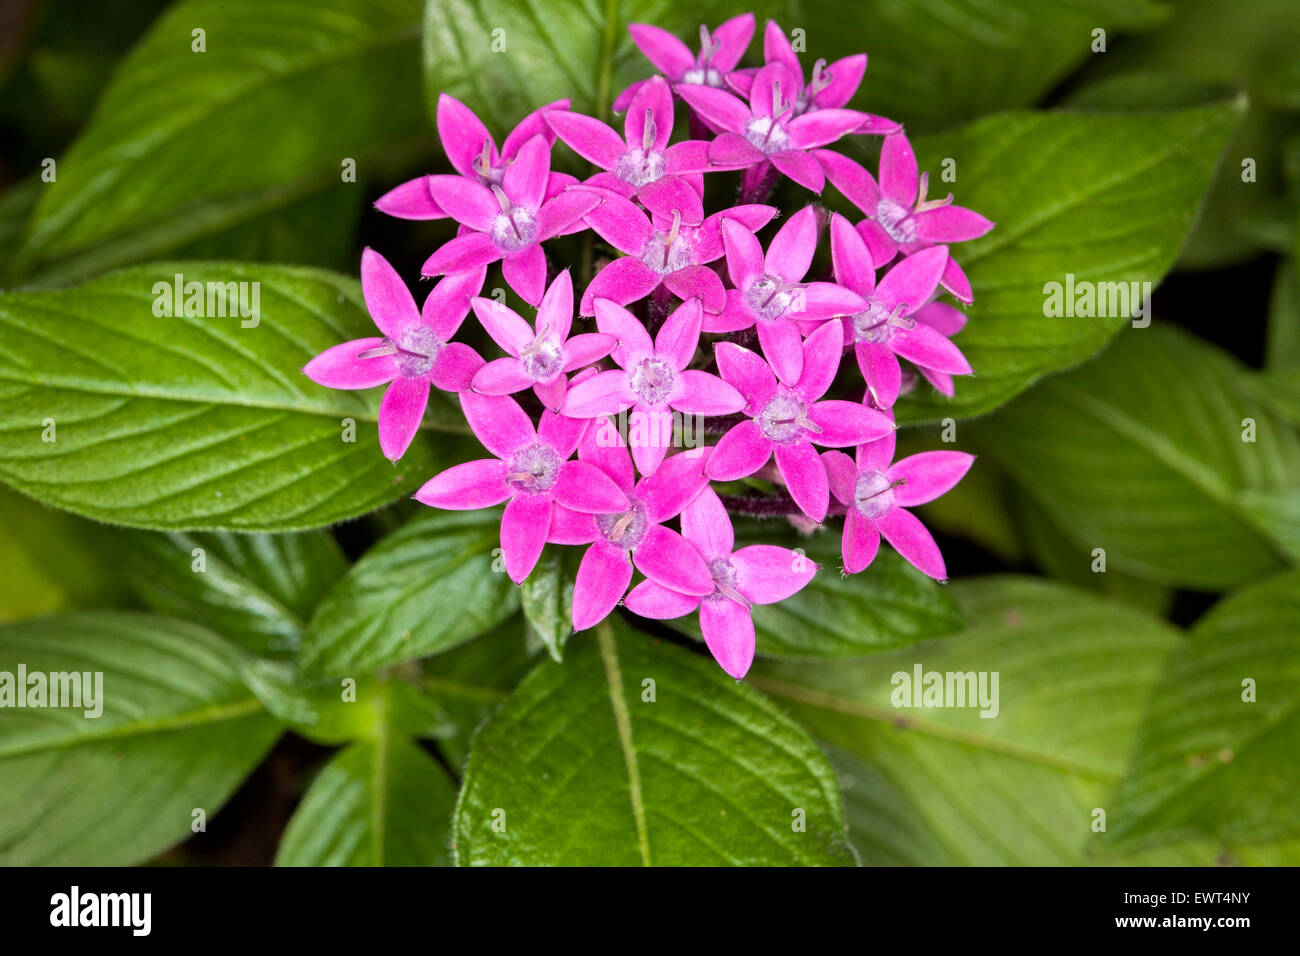 Pink Star Shaped Flowers Stock Photos Pink Star Shaped Flowers